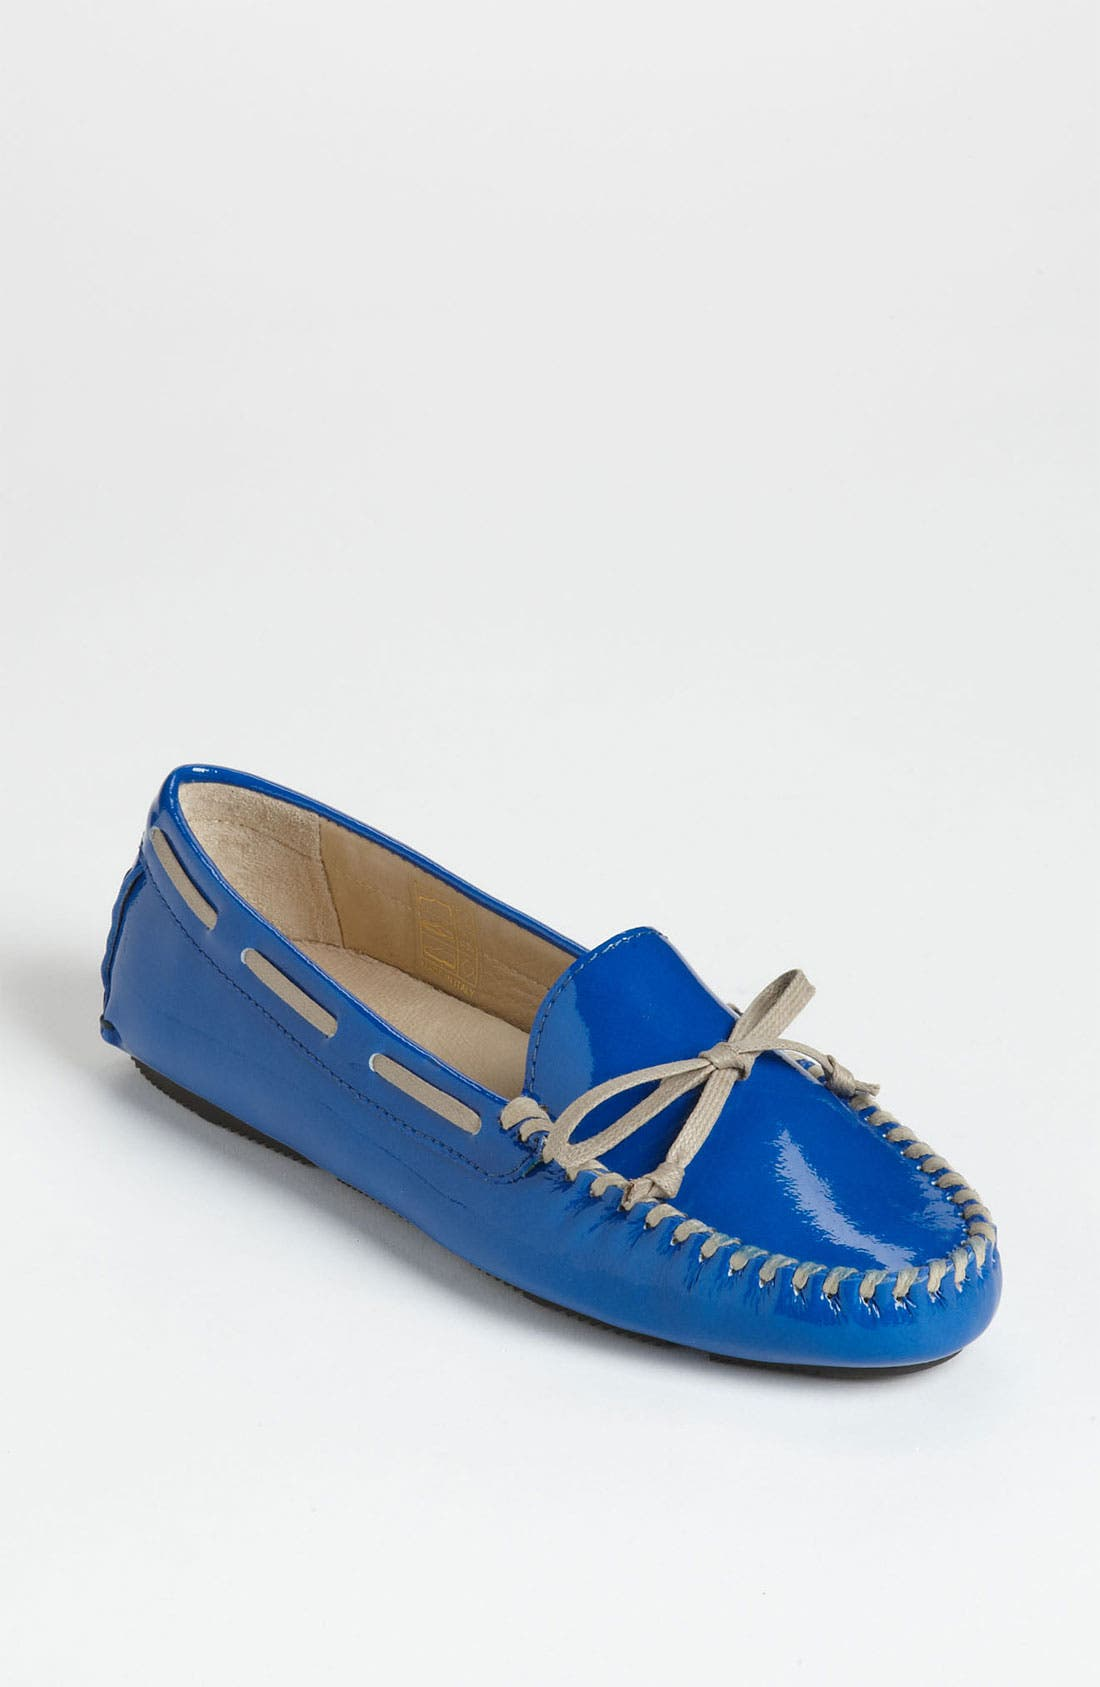 Main Image - Vera Wang Footwear 'Dorian' Loafer (Online Exclusive)